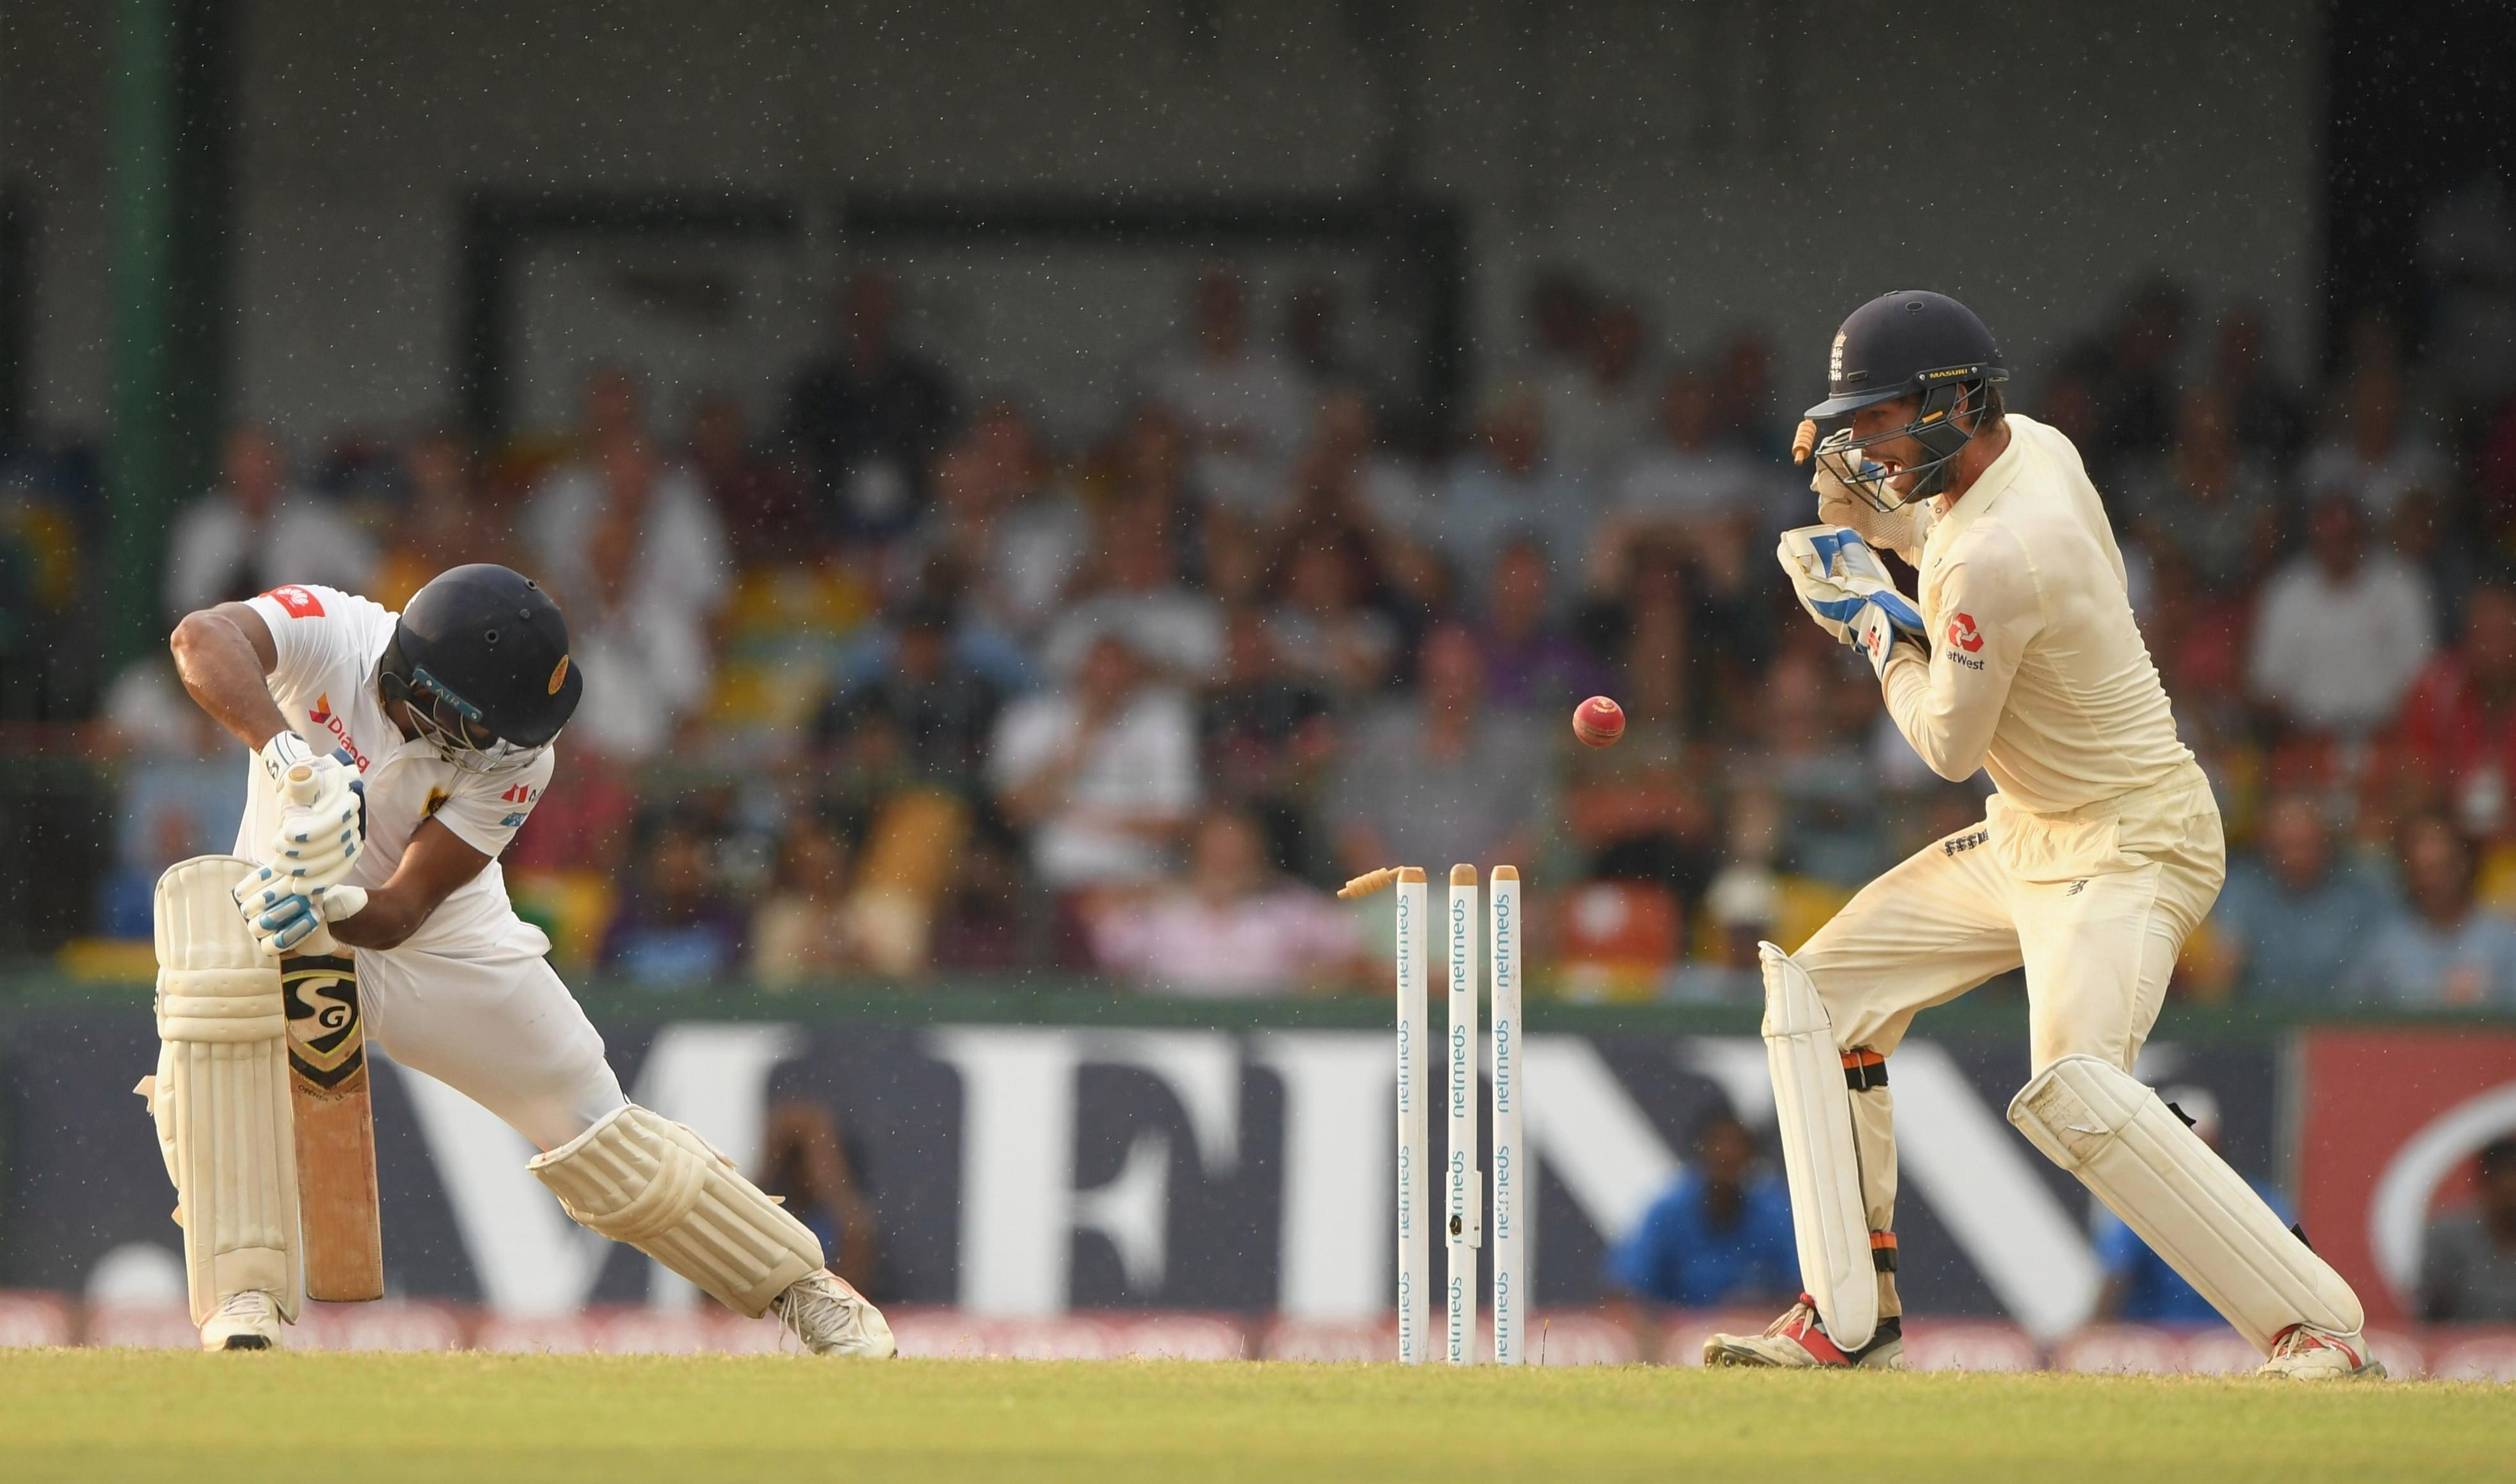 England rattled through Sri Lanka's top order late on day three